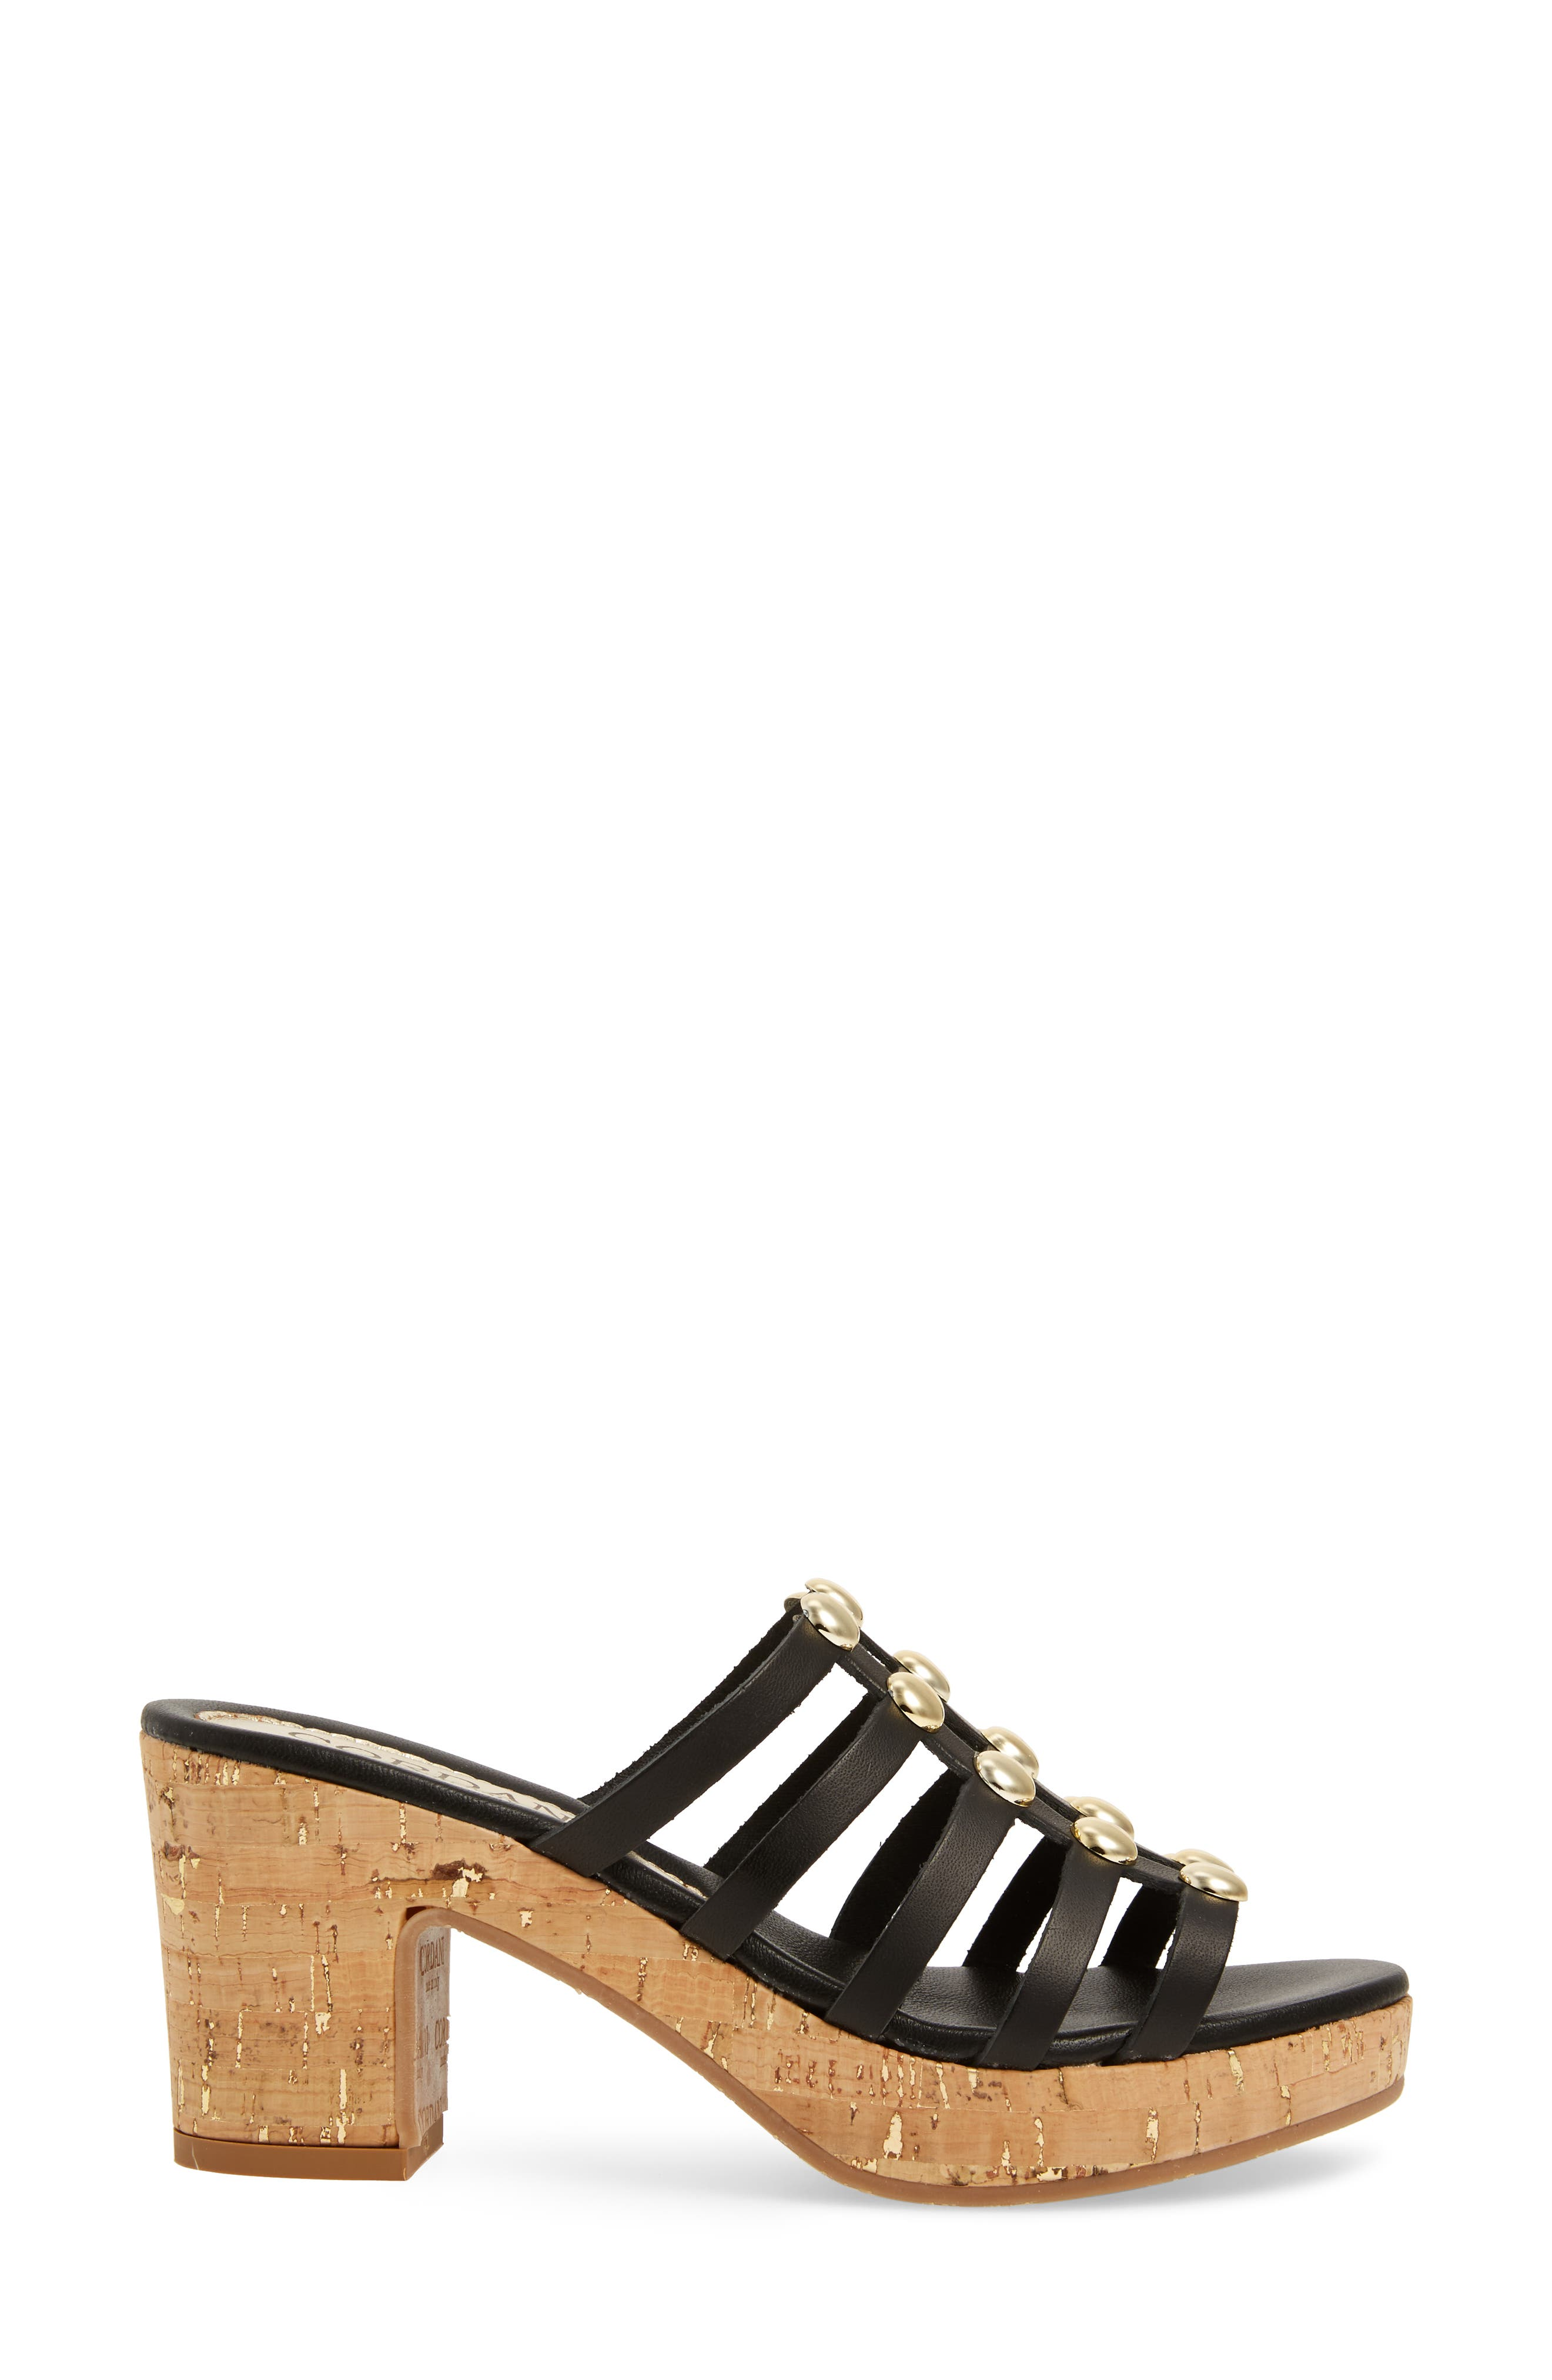 Keane Studded Slide Sandal,                             Alternate thumbnail 3, color,                             BLACK LEATHER